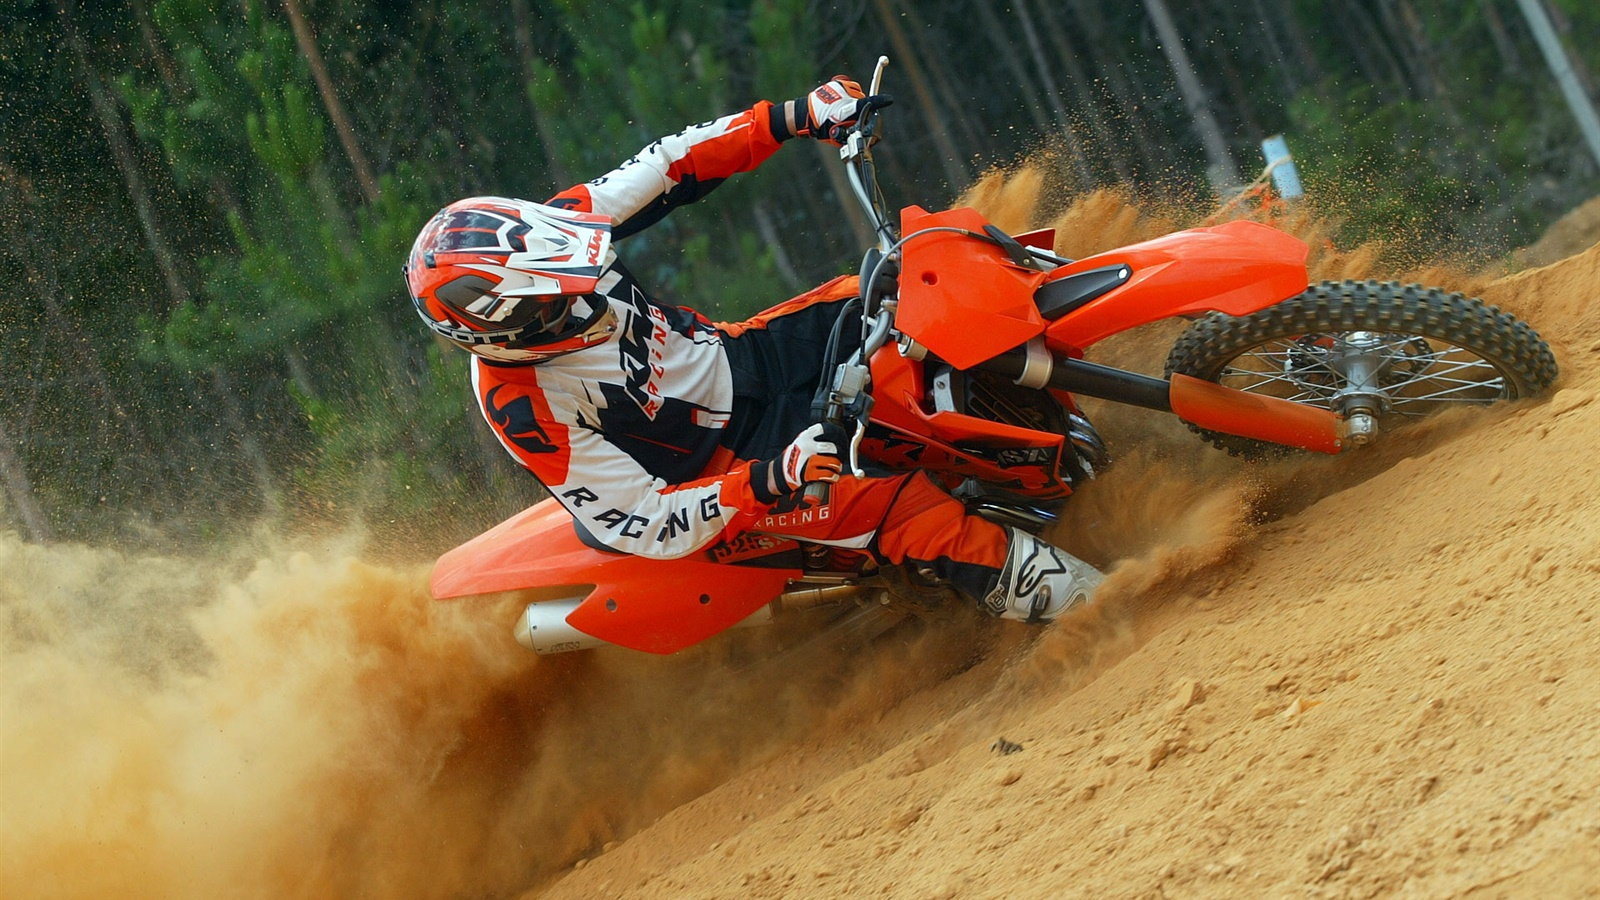 KTM motorcycle race 1600x900 wallpaper